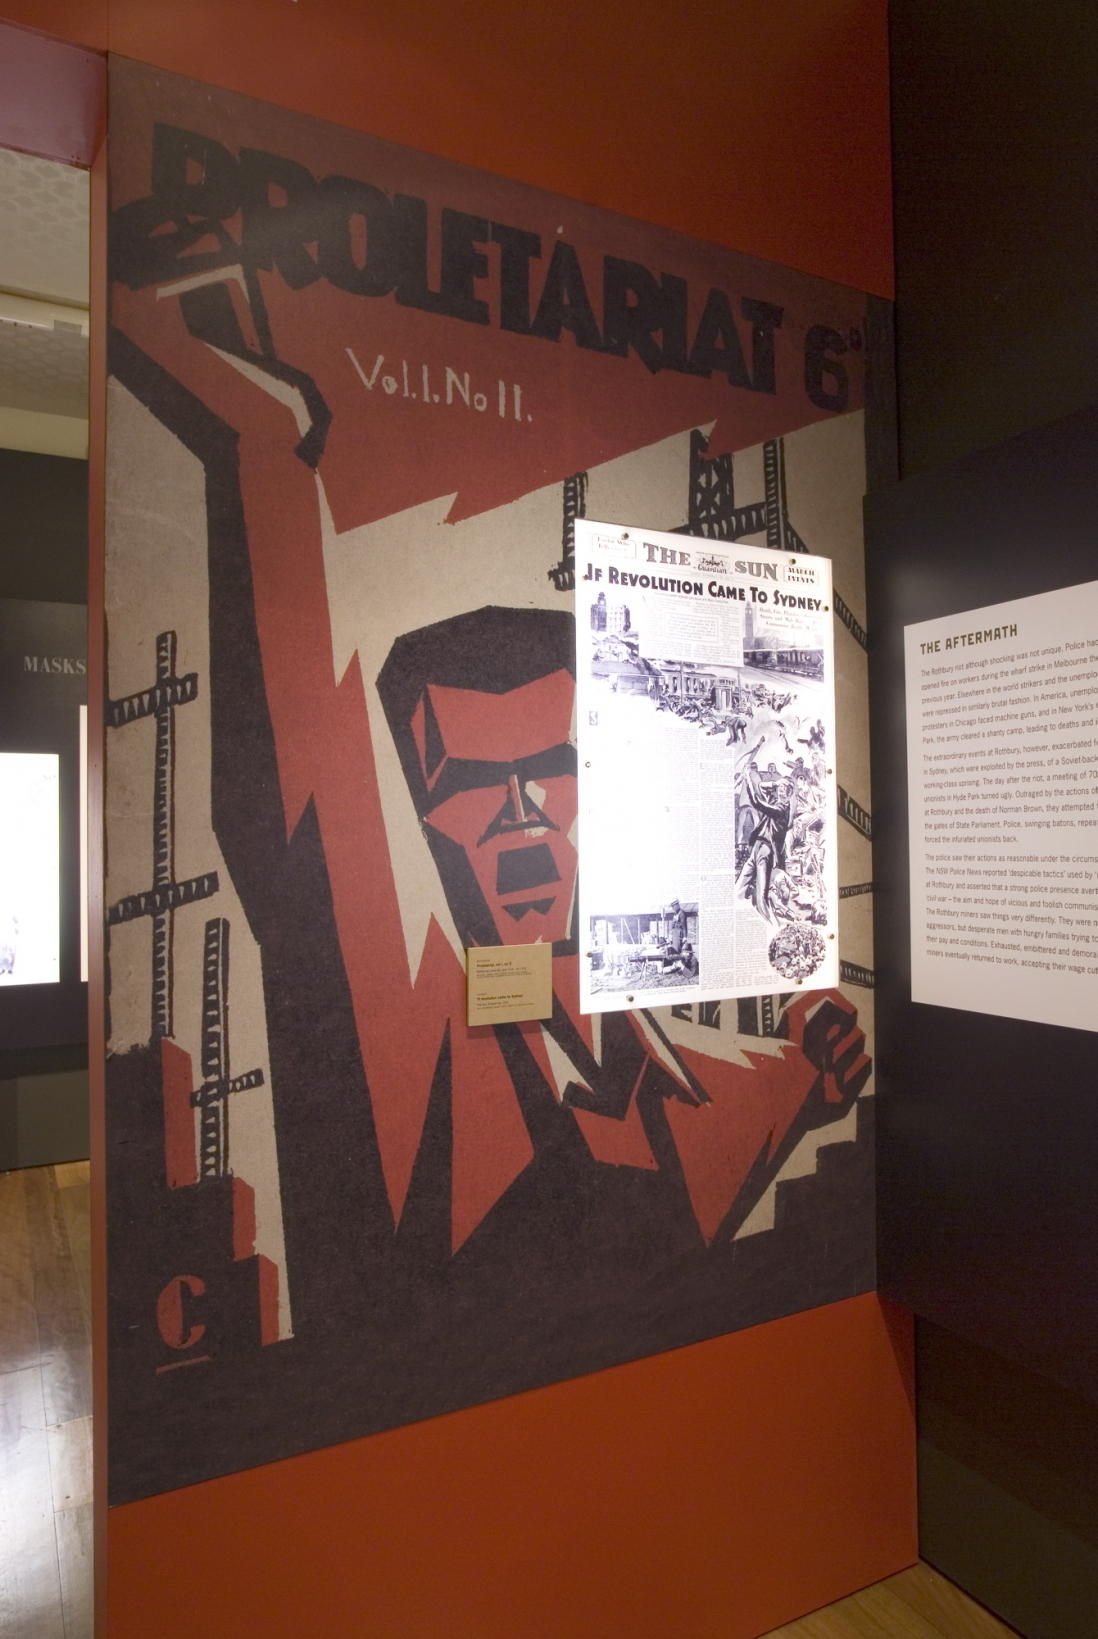 Tough men, hard times: policing the depression installation view